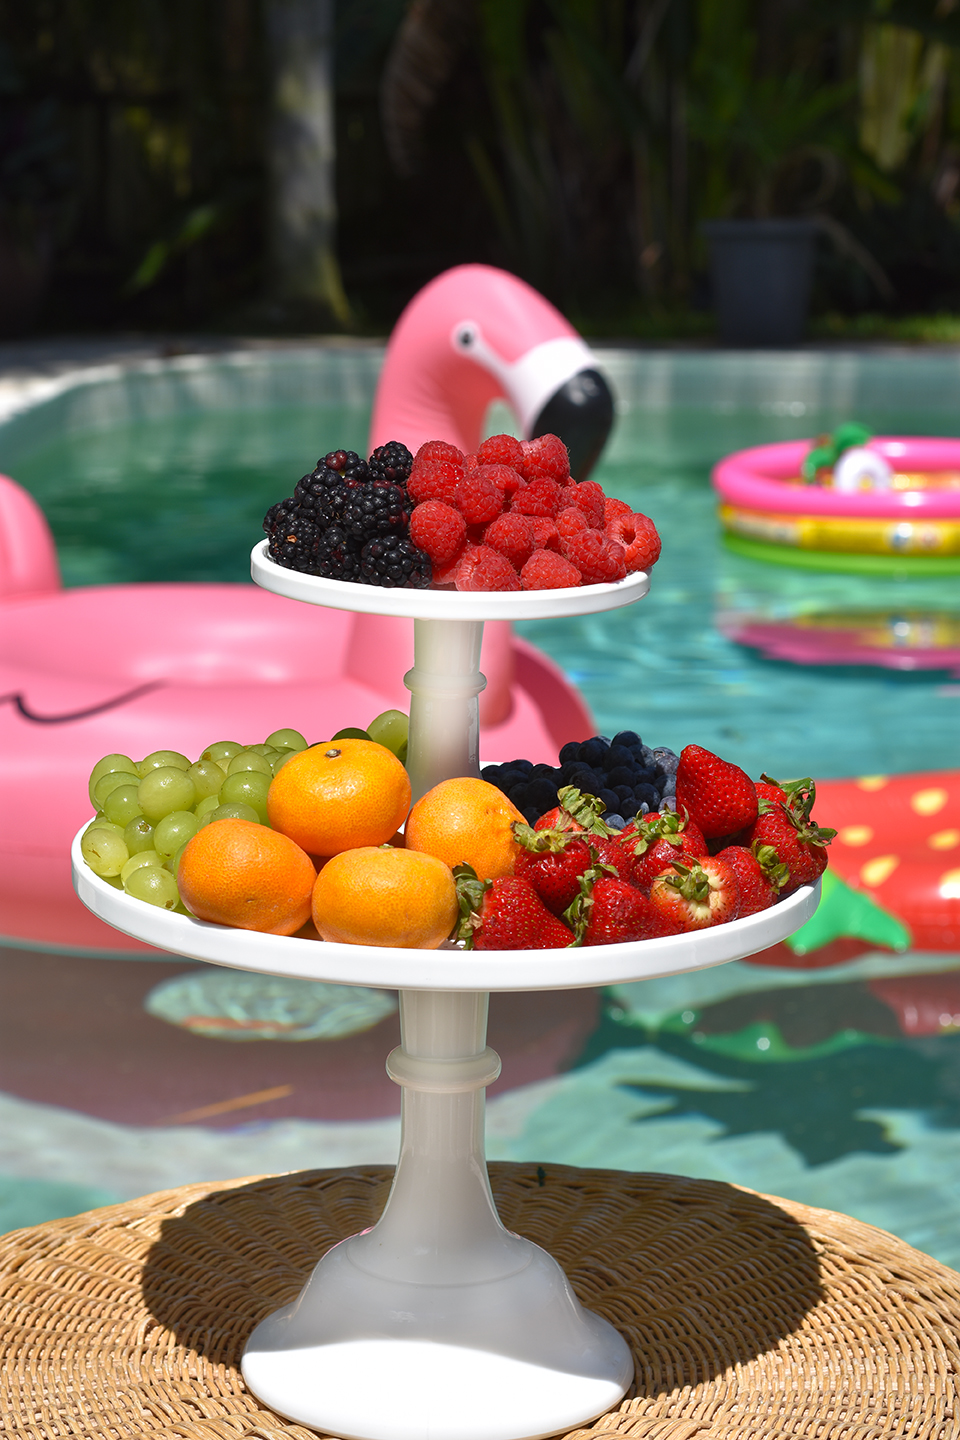 Snacks for an adult pool party, Pool party ideas for adults, backyard pool party ideas for adults, pool party for adults ideas